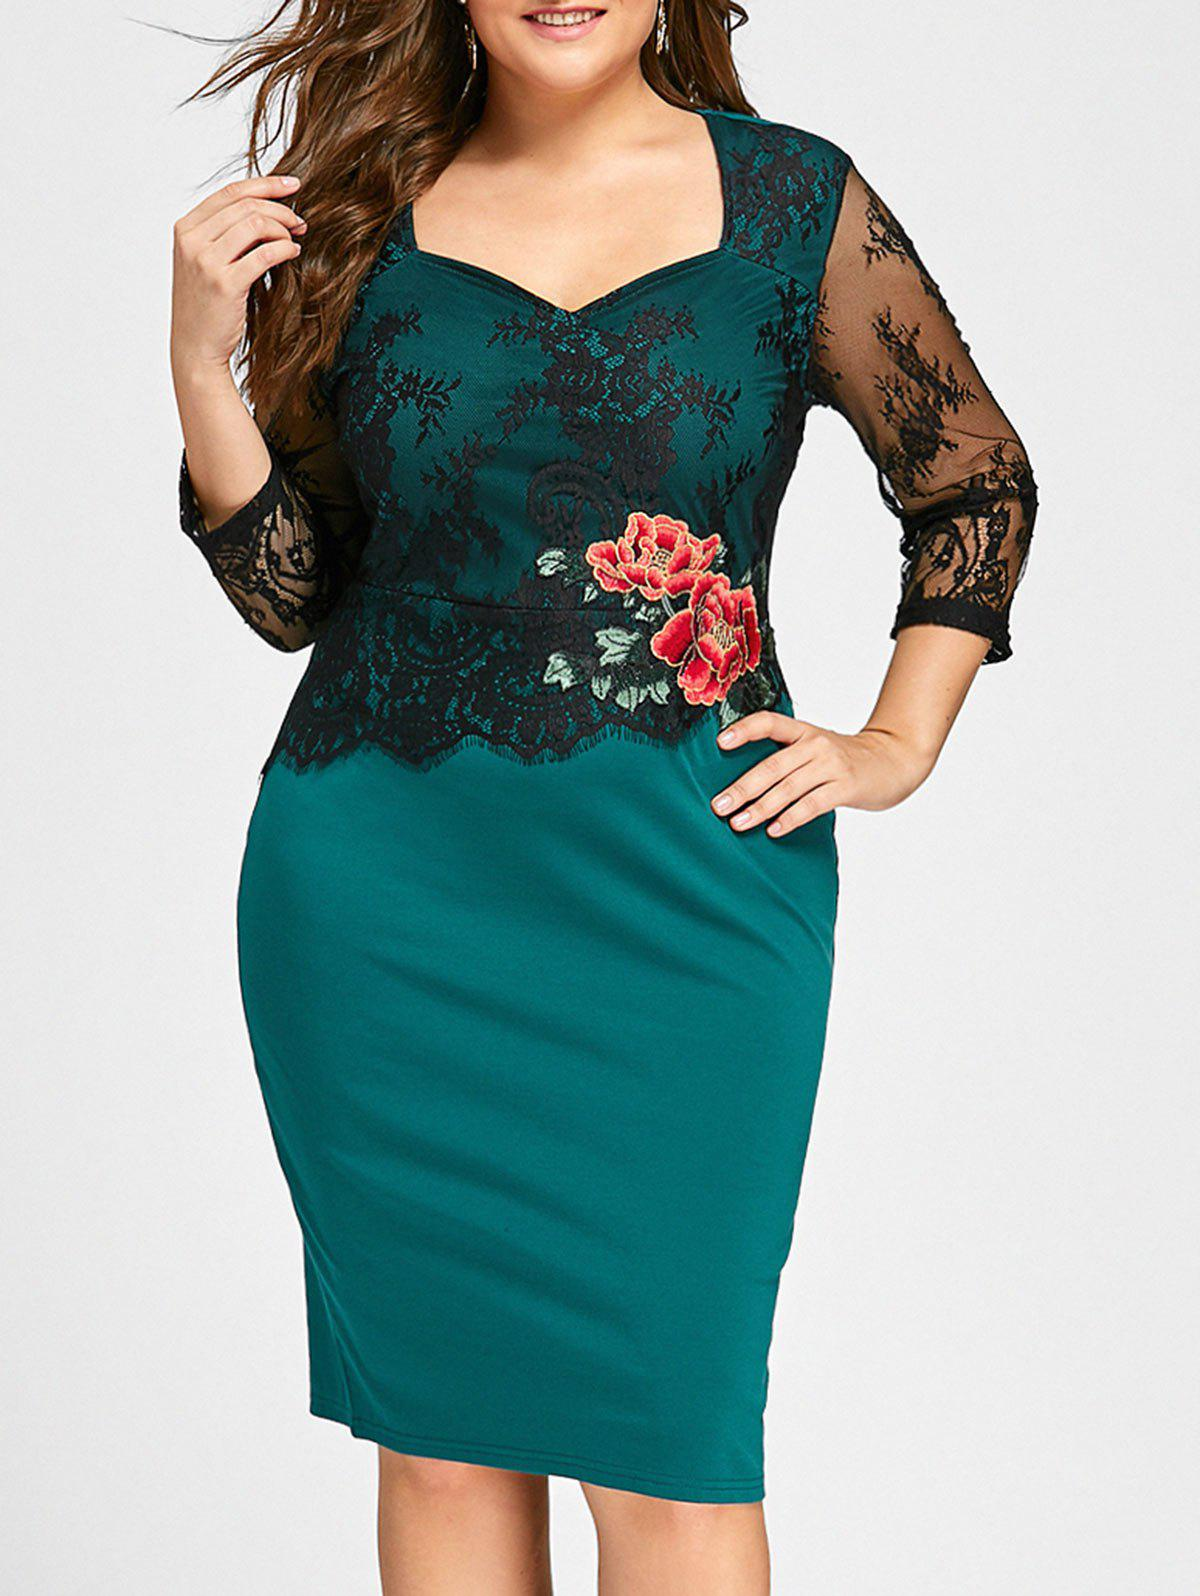 Plus Size Floral Applique Lace Panel Bodycon DressWOMEN<br><br>Size: 5XL; Color: GREEN; Style: Casual; Material: Cotton,Polyester; Silhouette: Bodycon; Dresses Length: Knee-Length; Neckline: Sweetheart Neck; Sleeve Length: 3/4 Length Sleeves; Embellishment: Appliques; Pattern Type: Floral; With Belt: No; Season: Fall,Spring; Weight: 0.3900kg; Package Contents: 1 x Dress;